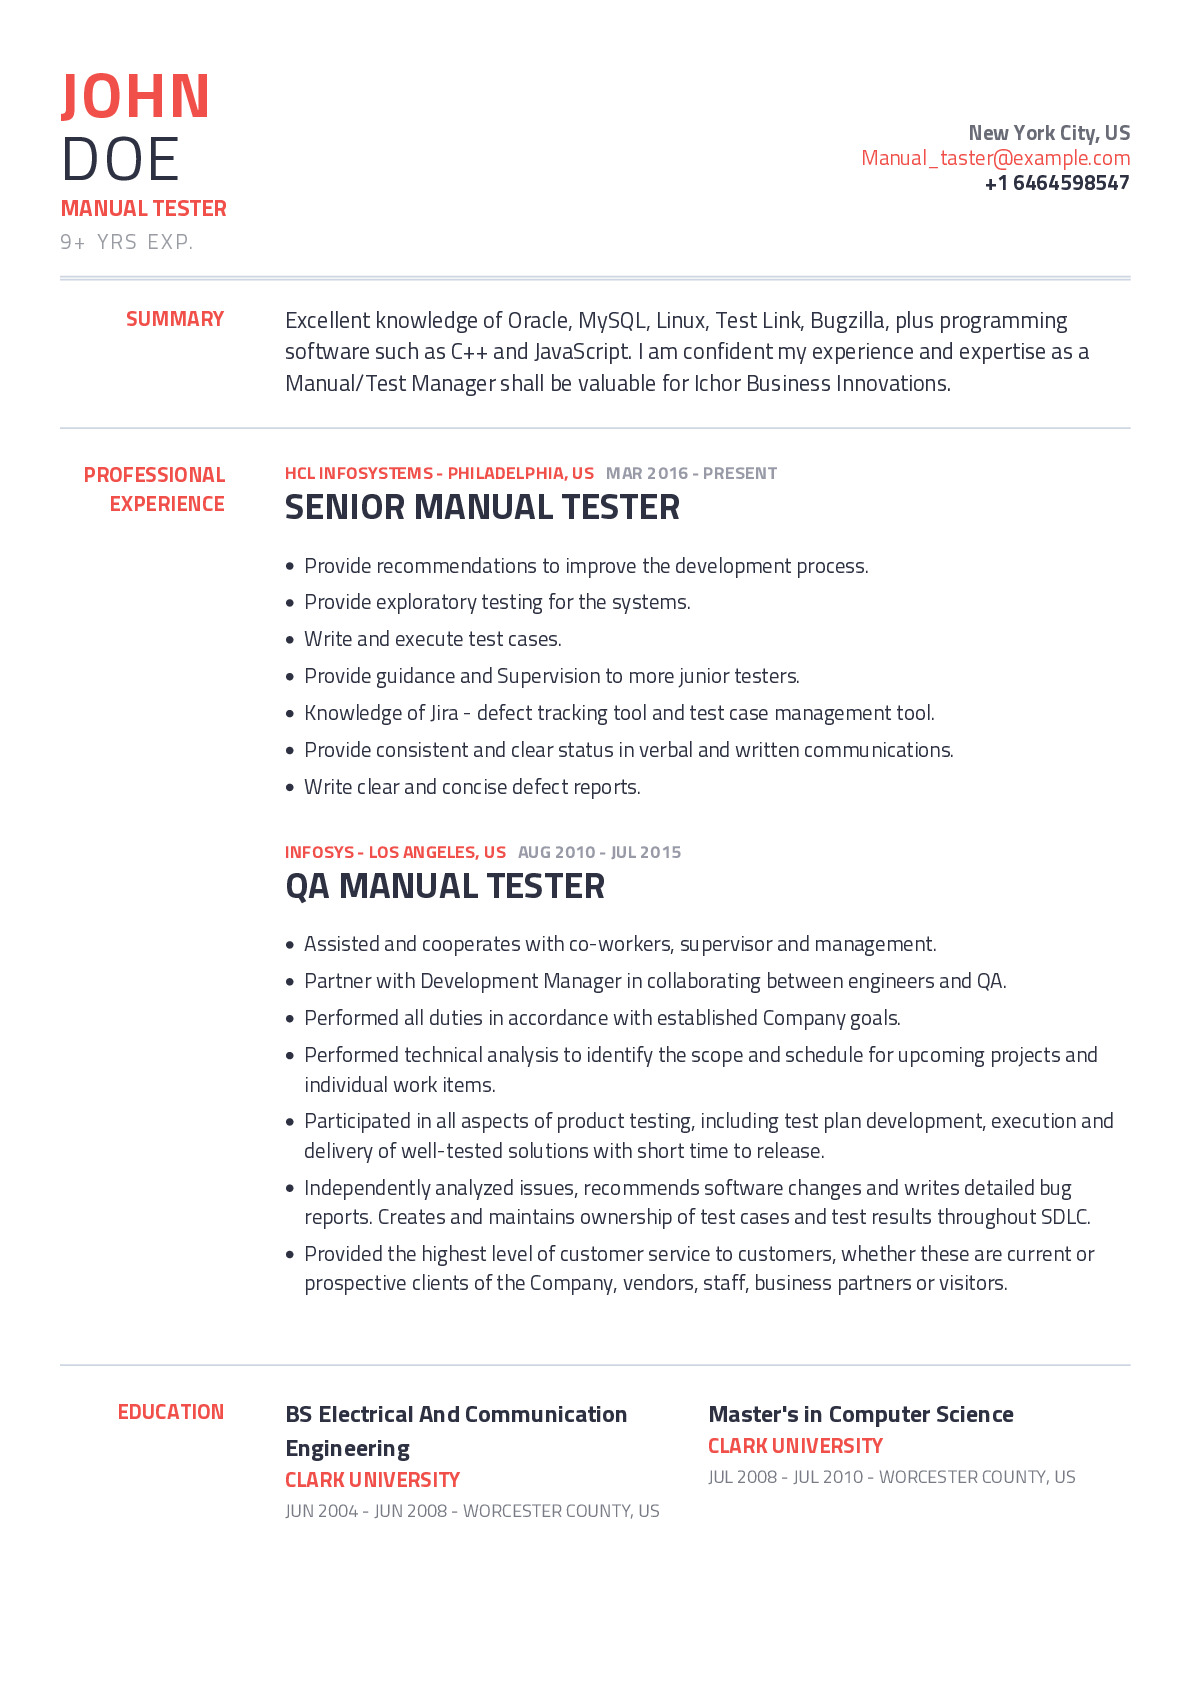 Manual Tester Resume Example